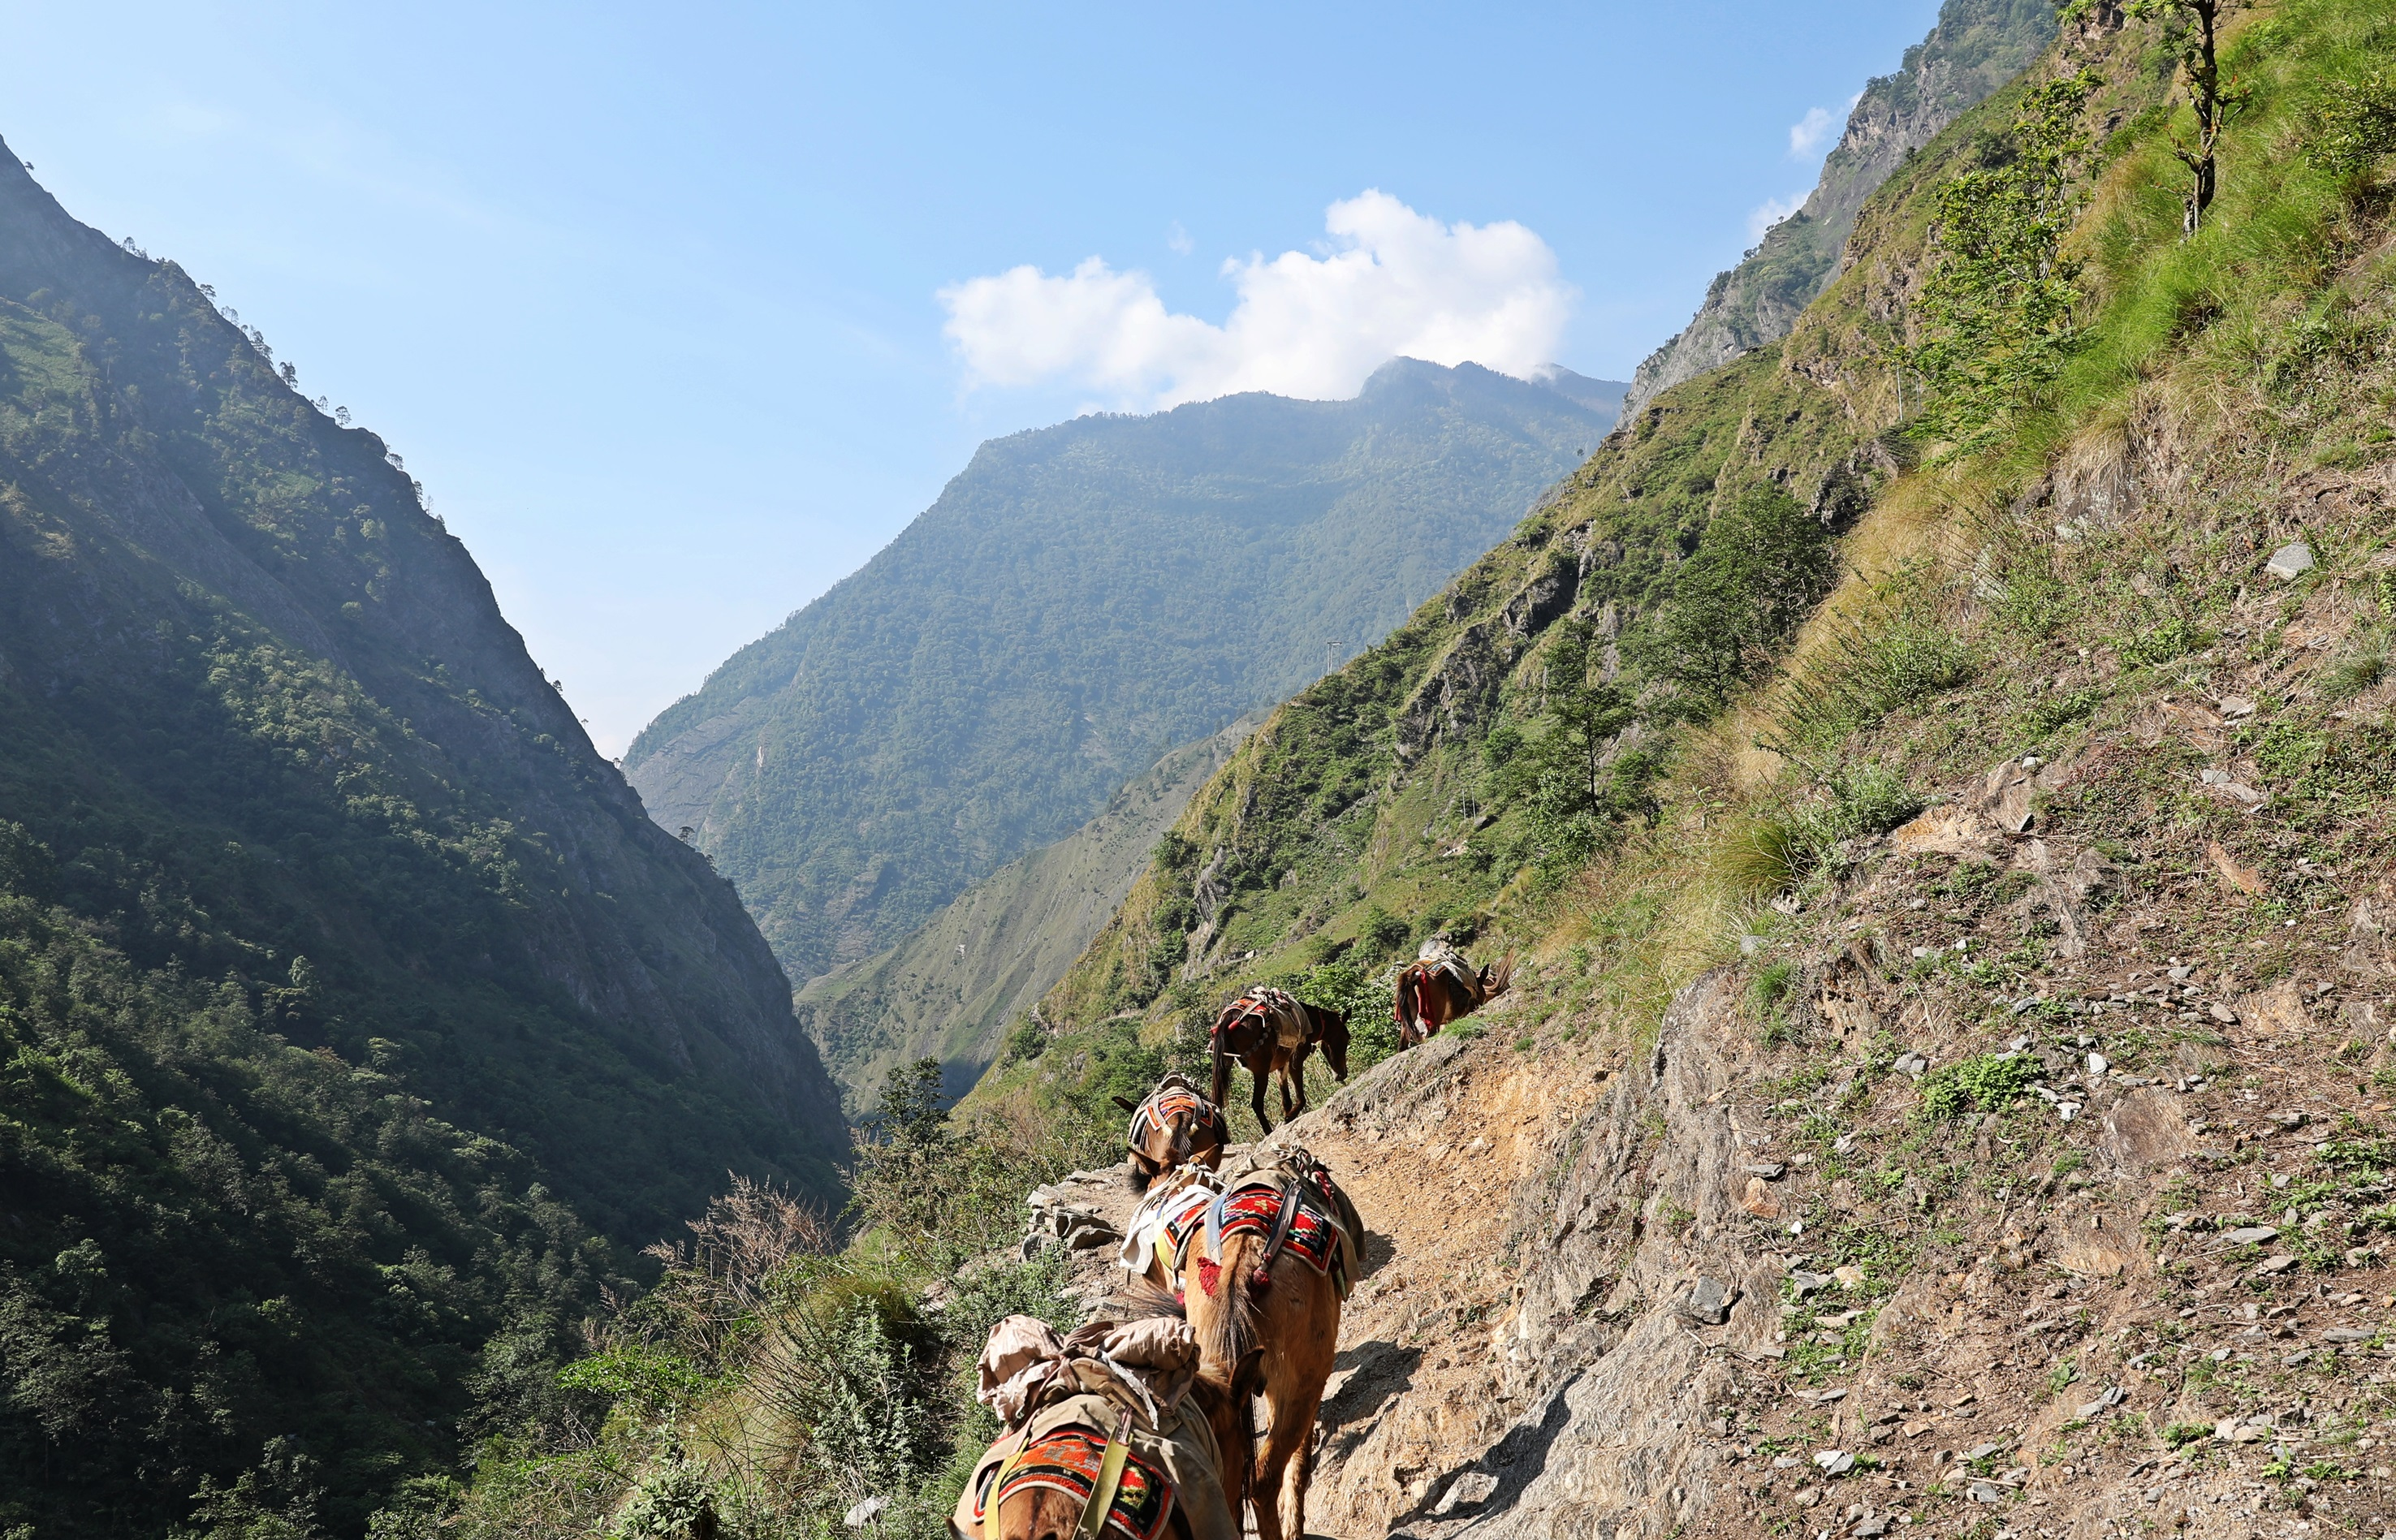 Mules carrying supplies to the villages